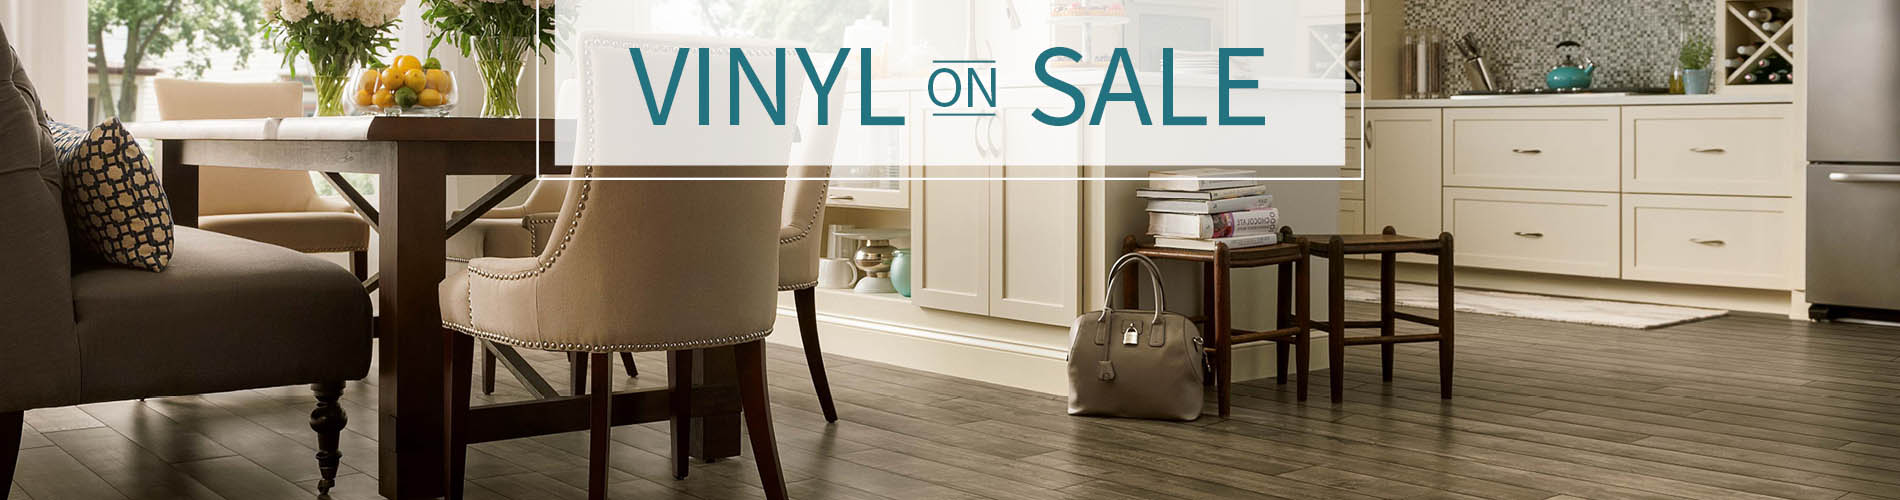 Luxury Vinyl On Sale Now! Visit our showroom for the hottest trends in flooring!